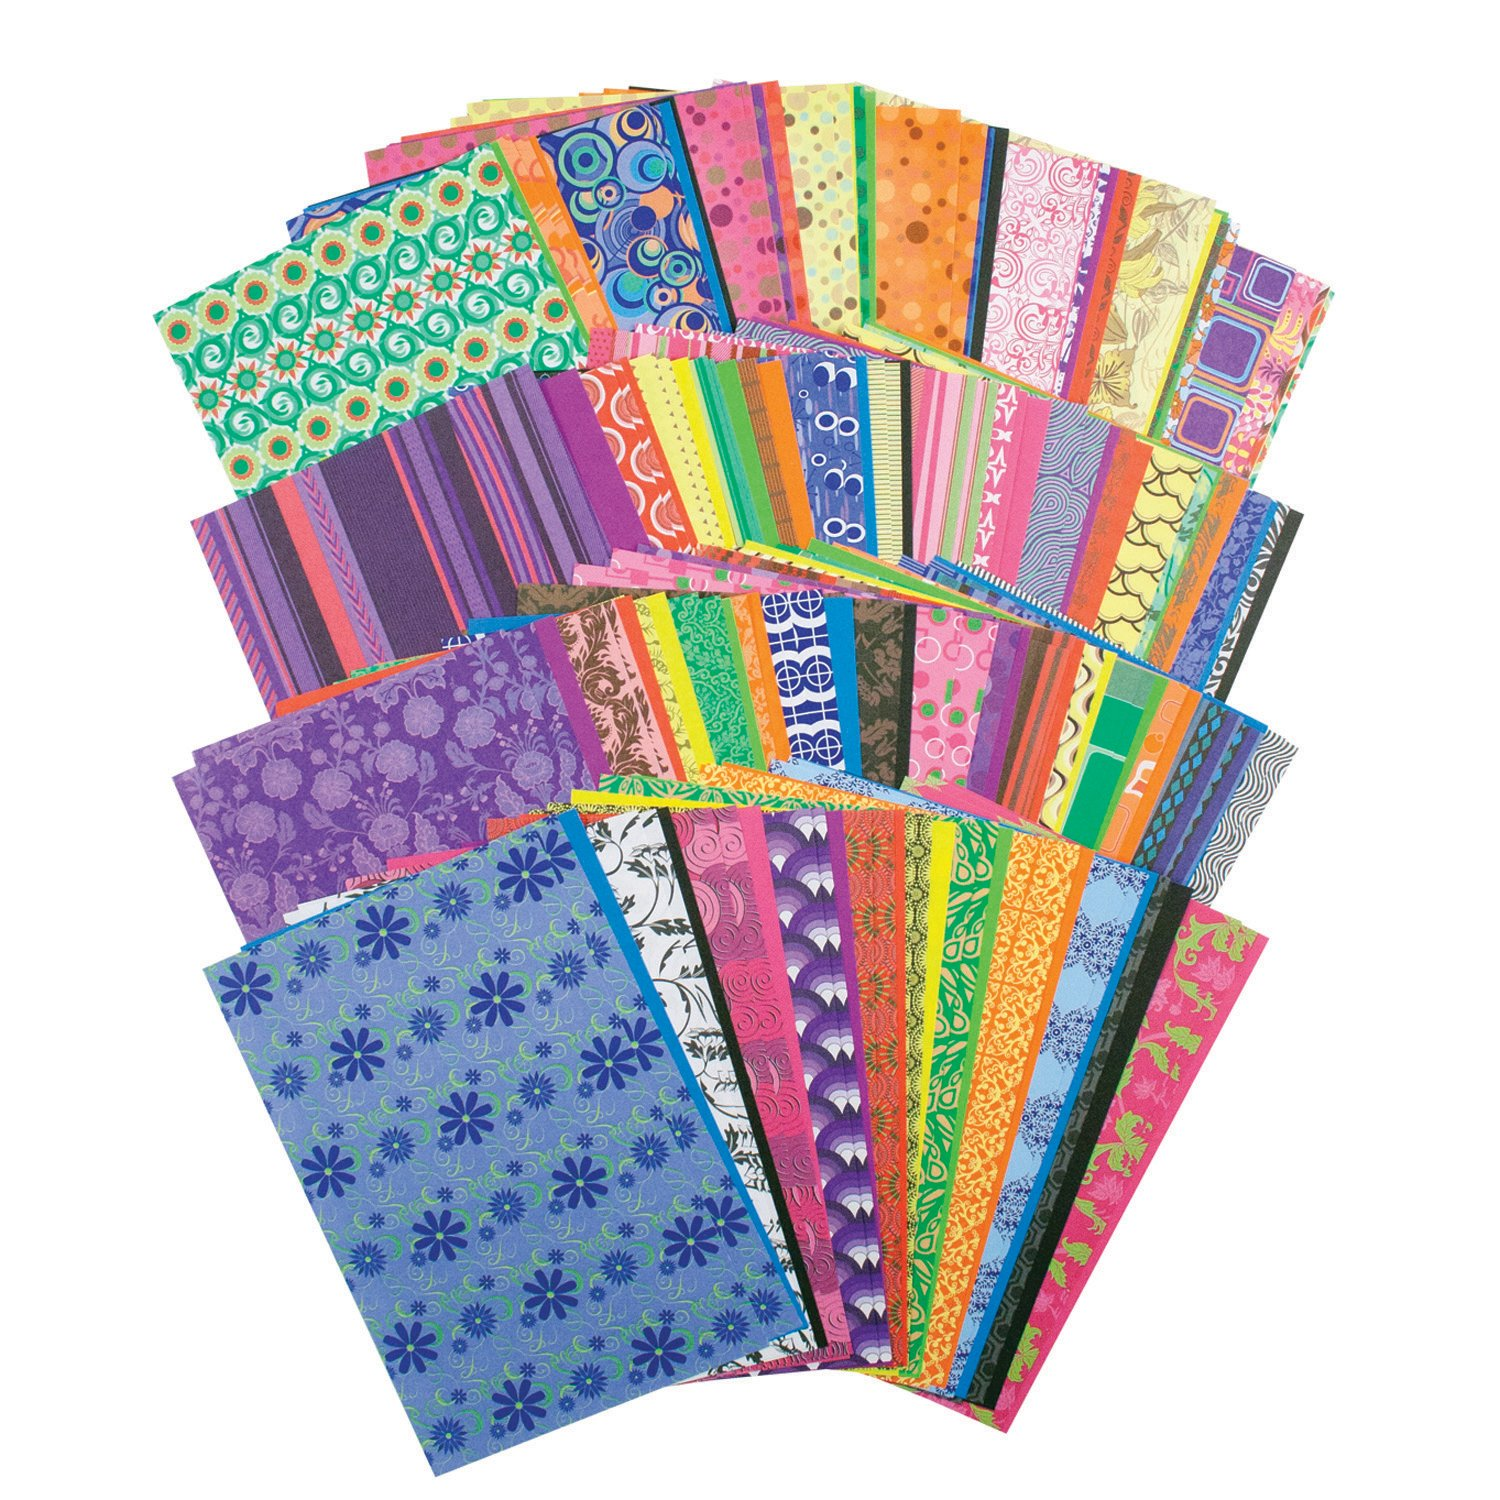 Roylco Decorative Hues Paper, 8-1/2 X 5-1/2 in, Pack of 192